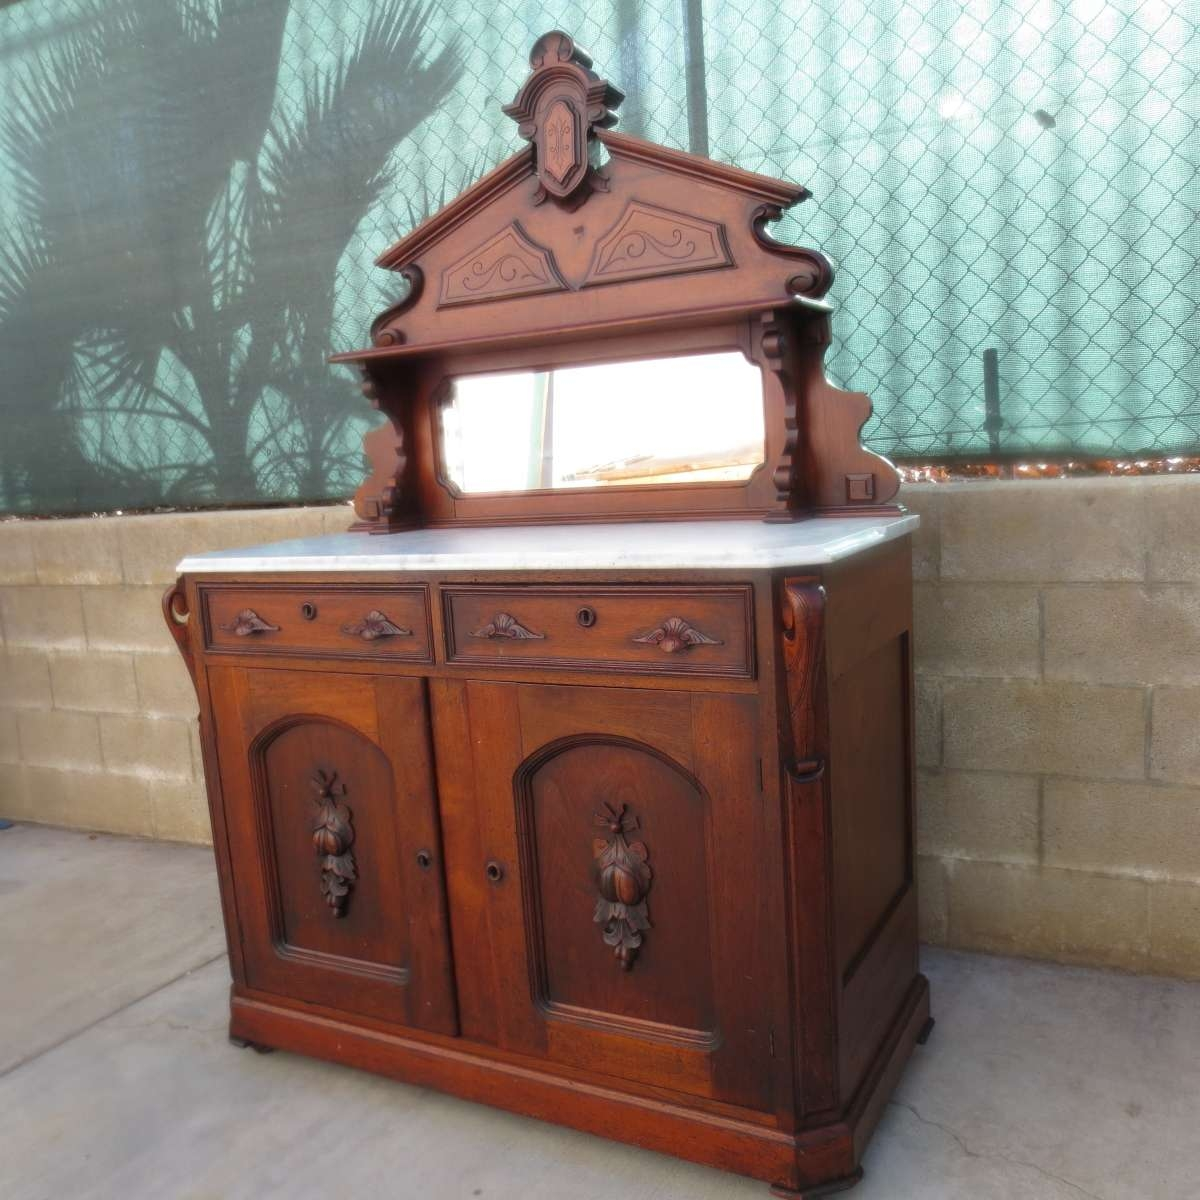 Antique Sideboards And Buffets Mirror — All Furniture : Antique With Regard To Jacobean Sideboards Buffets (View 15 of 20)